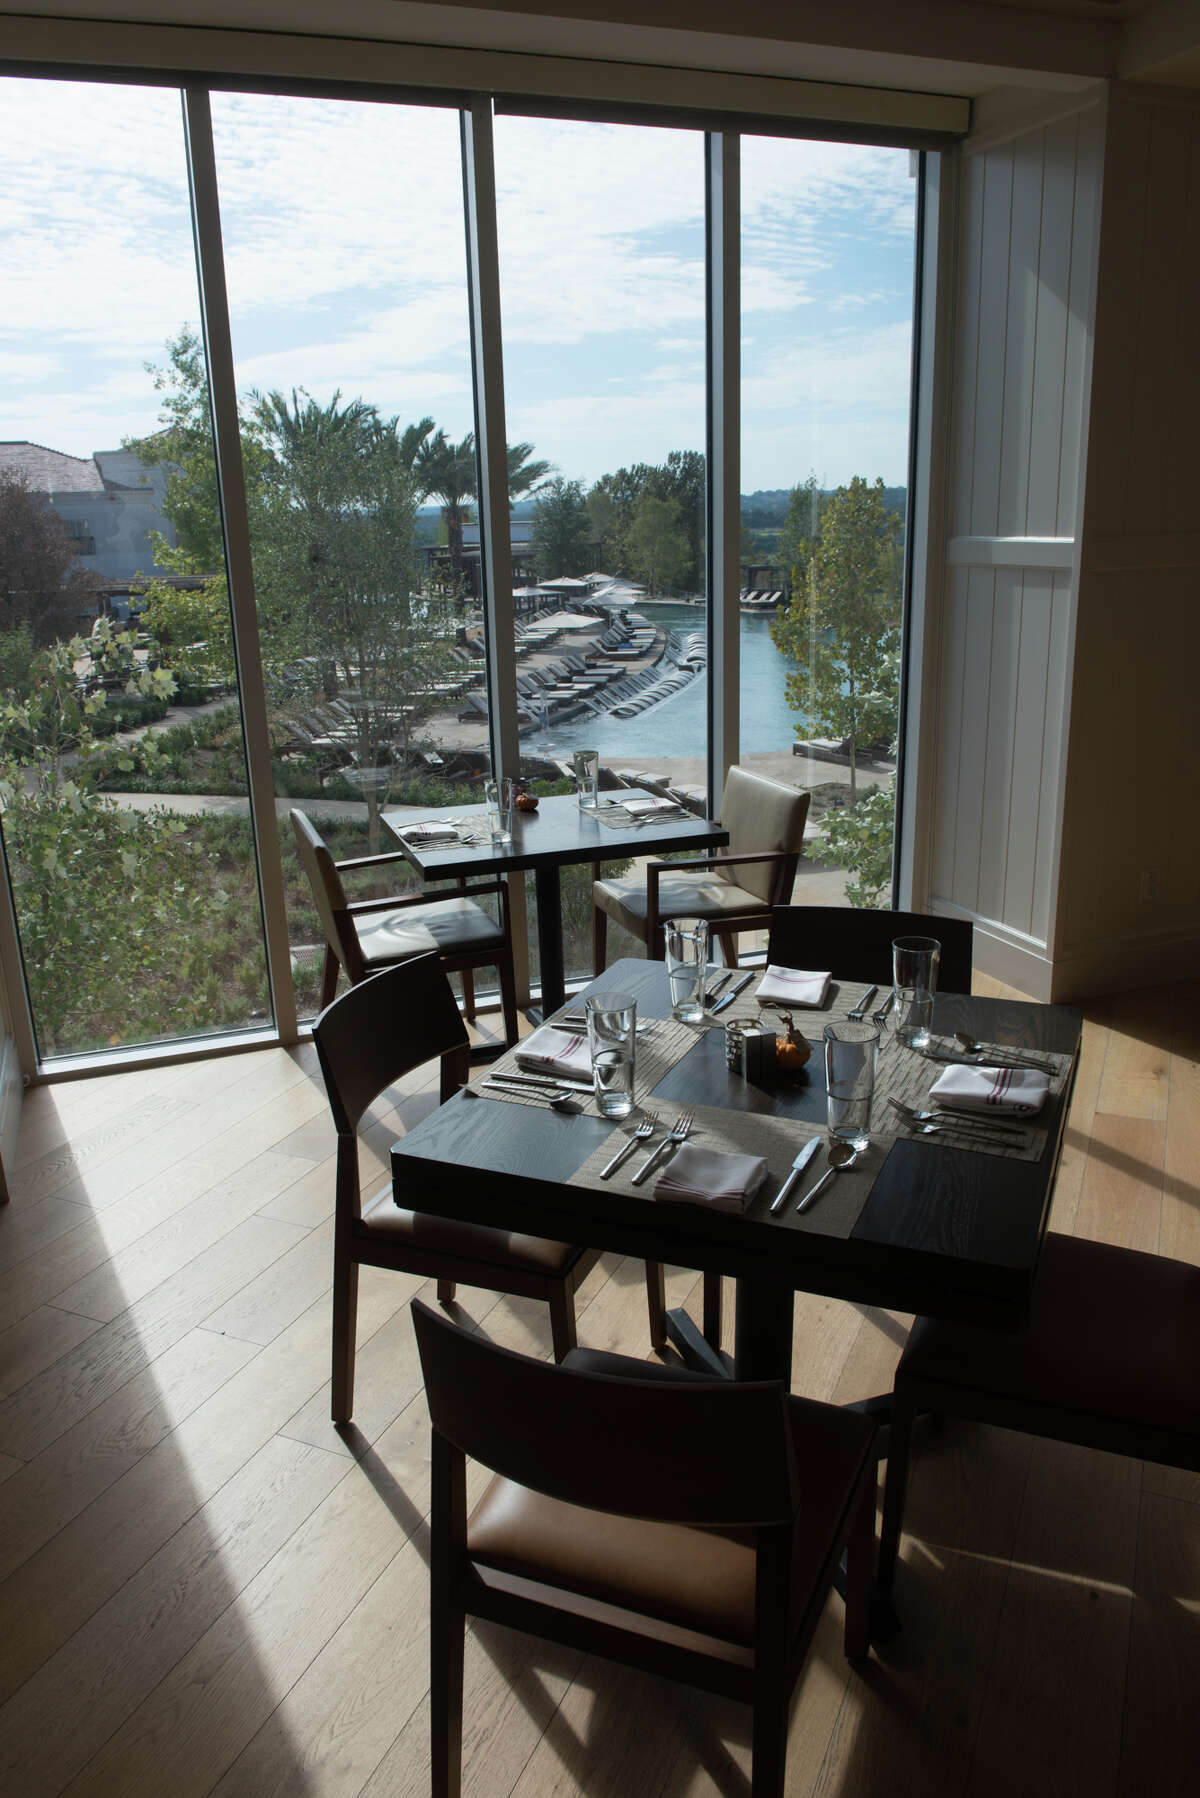 Chefs Robert Carr and John Zaner present a five-course Taste of La Cantera dinner with cocktail pairings.7 p.m. May 18. La Cantera Resort & Spa, 16641 La Cantera Parkway. $125, 210-558-6500, culinariasa.org